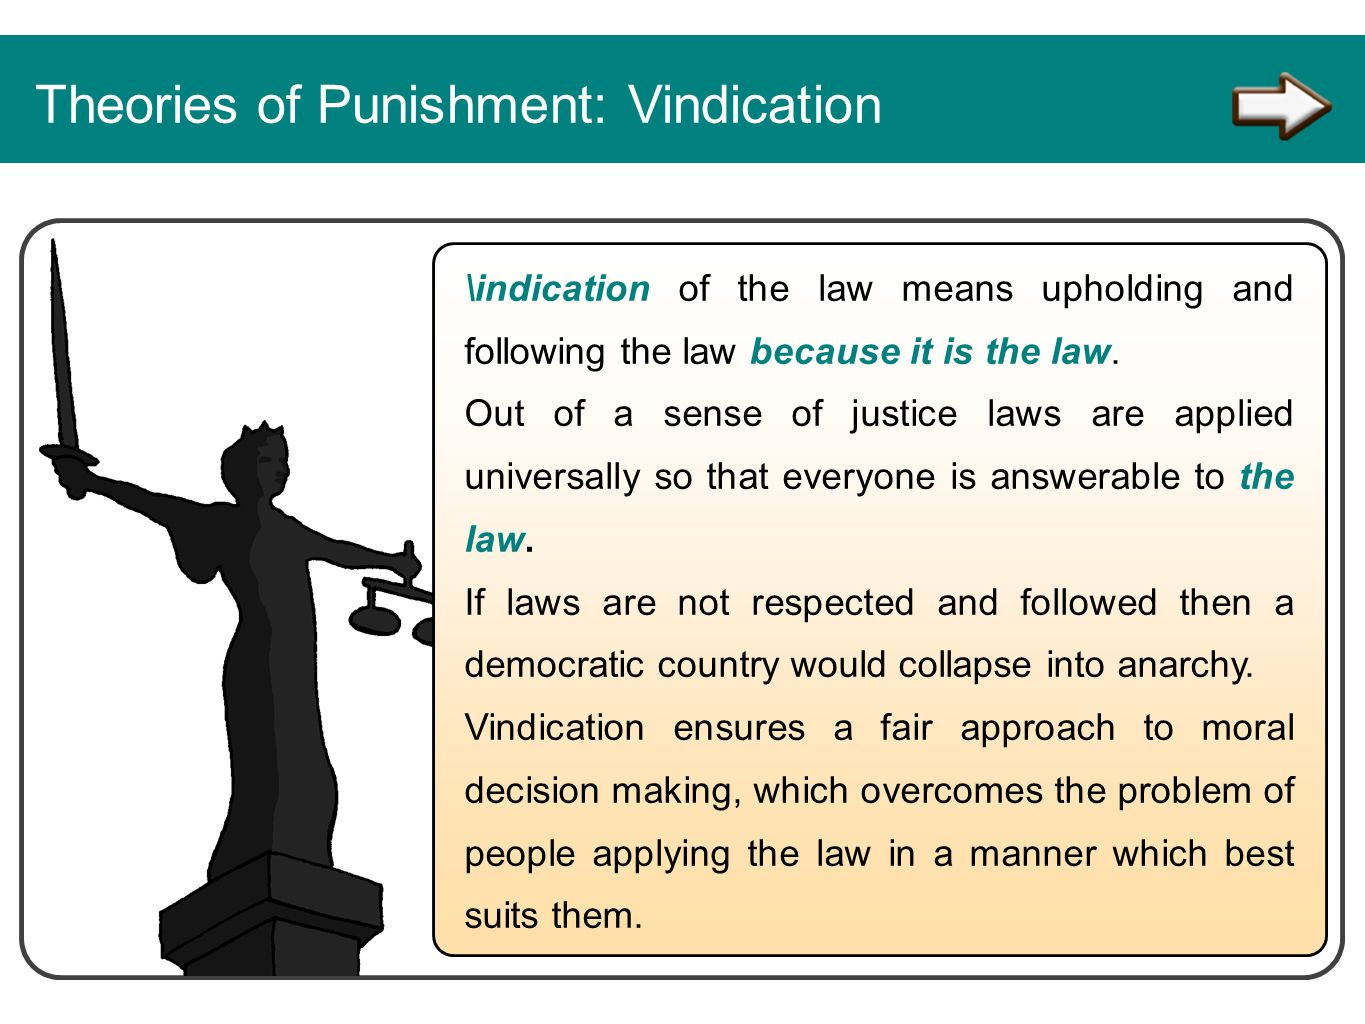 Theories of Punishment: Vindication